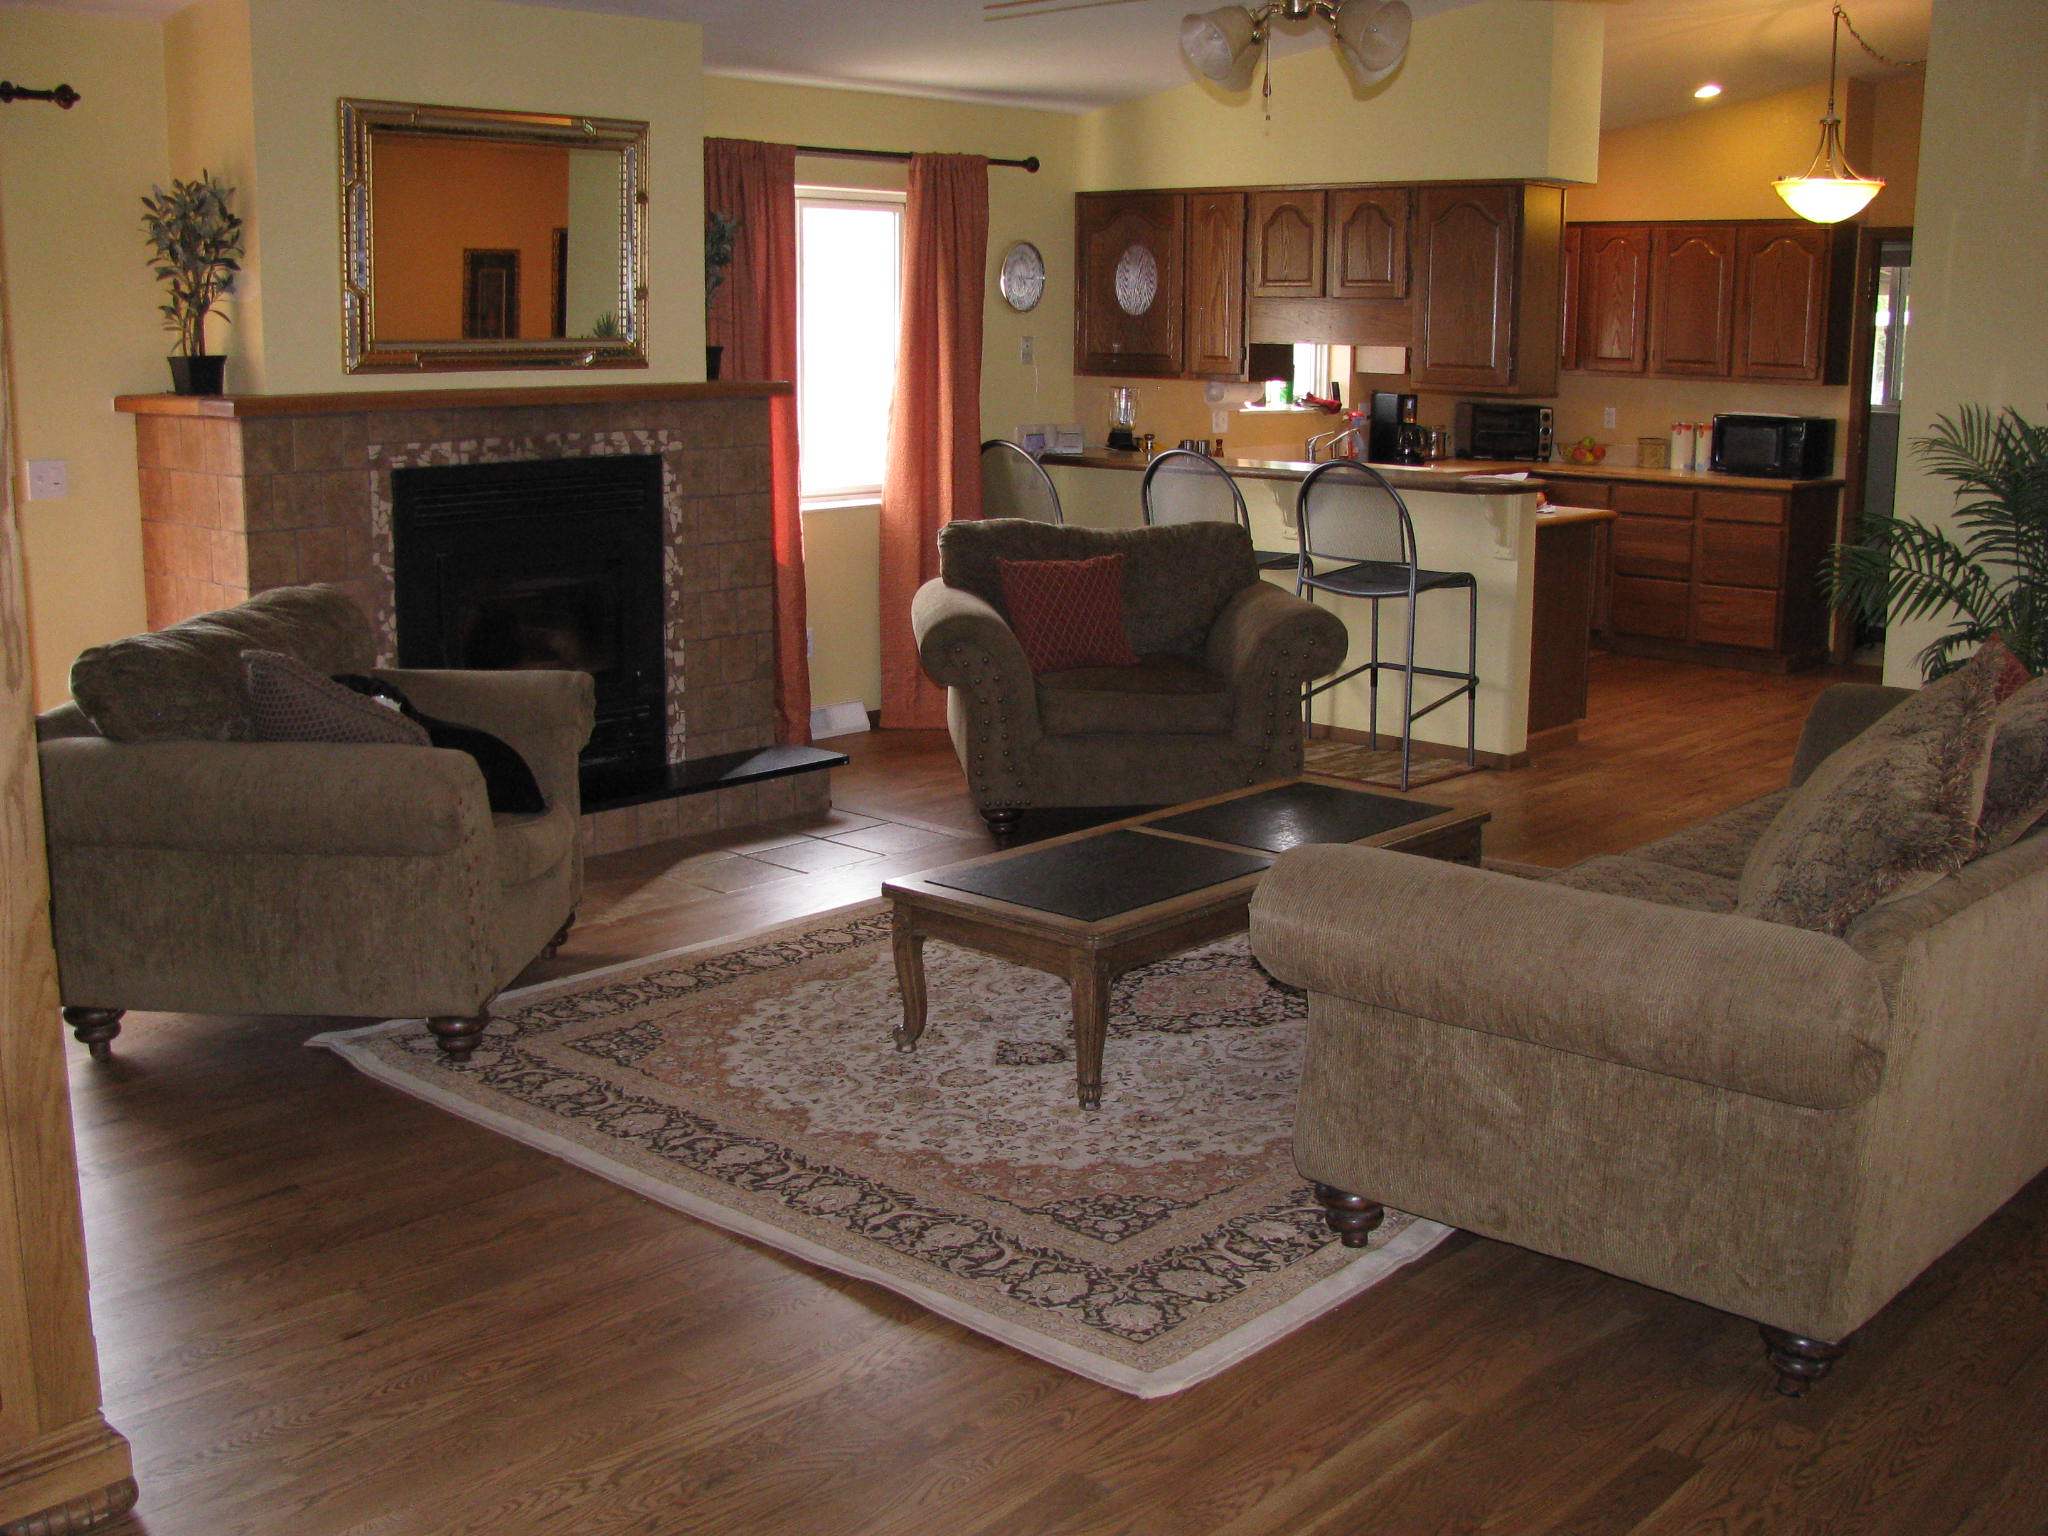 New Hardwood Flooring|Alpine Flooring, Inc.